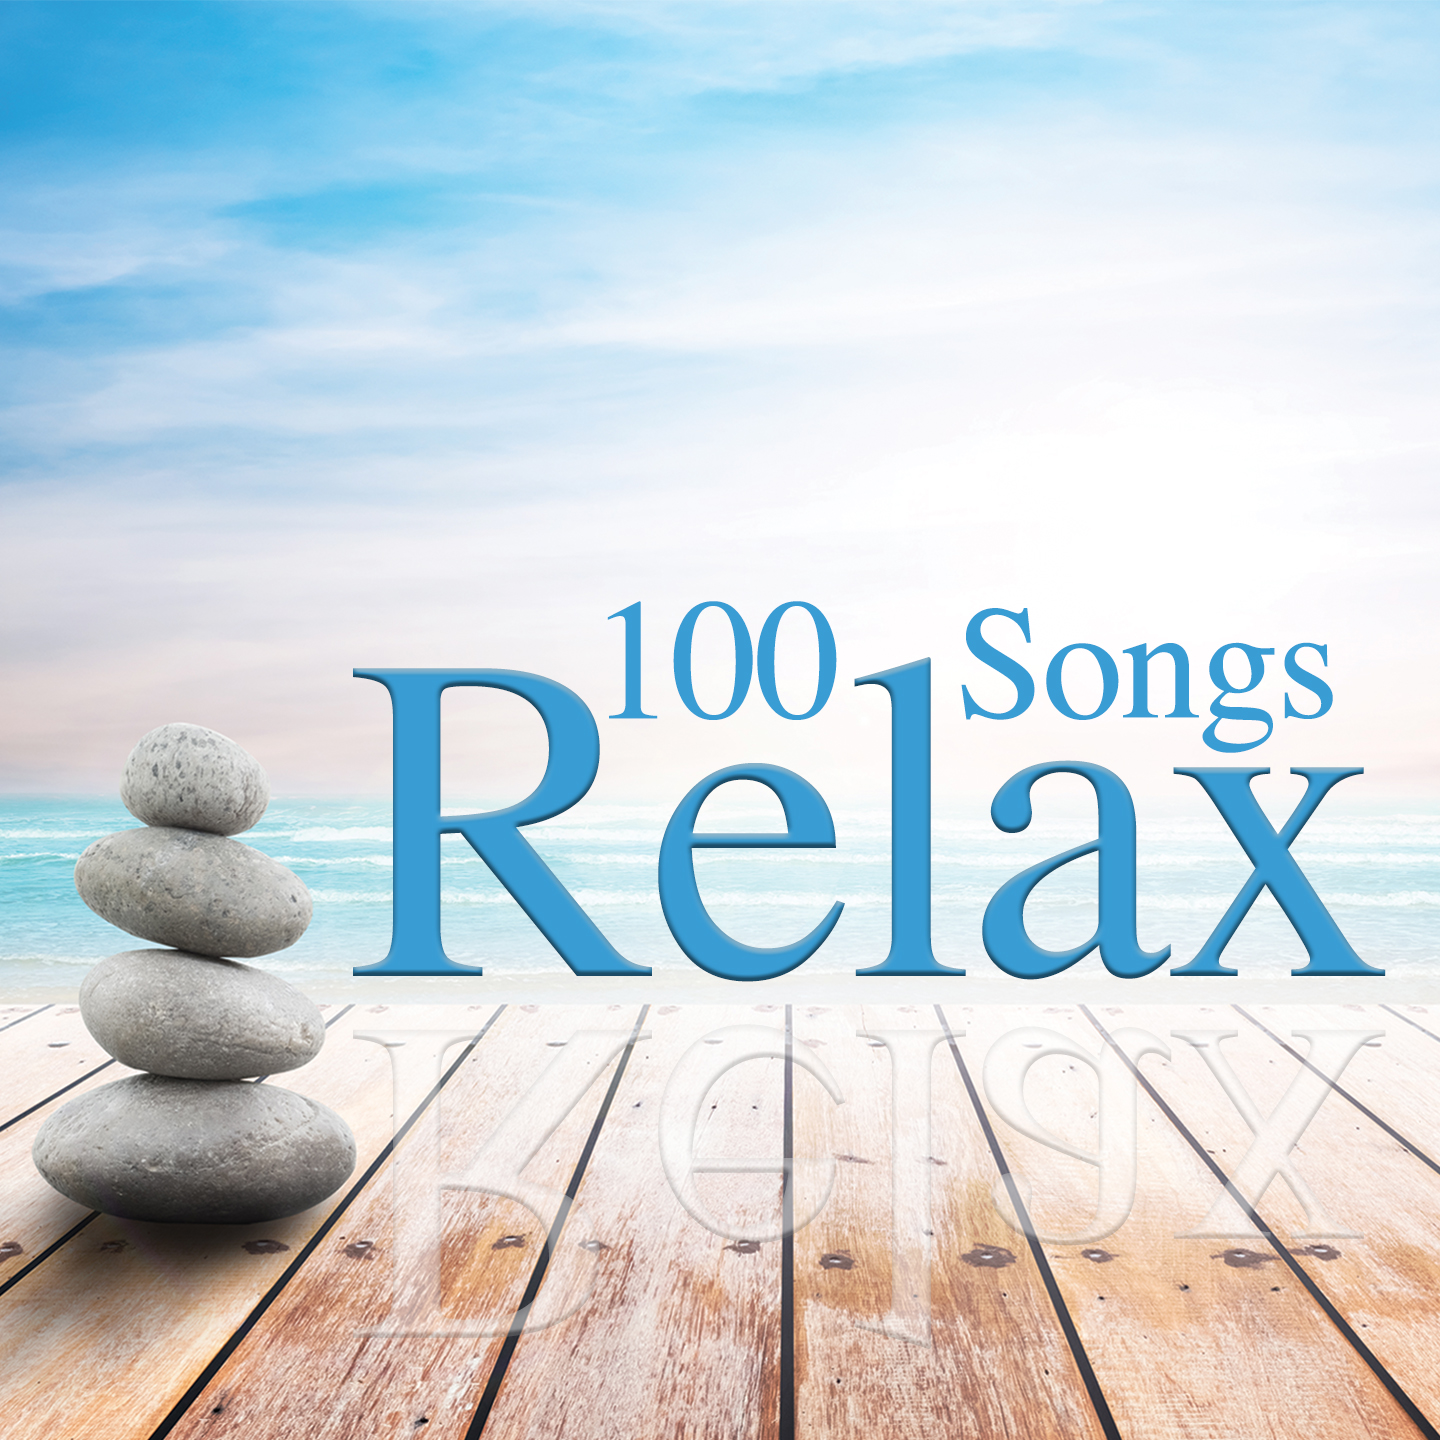 4 CD 100 Songs Relax, Musica Rilassante, Peaceful, Wellness Relax, Lounge Music, Relaxing, Meditation, Sound Of Nature, Chillout Music, Spa Music